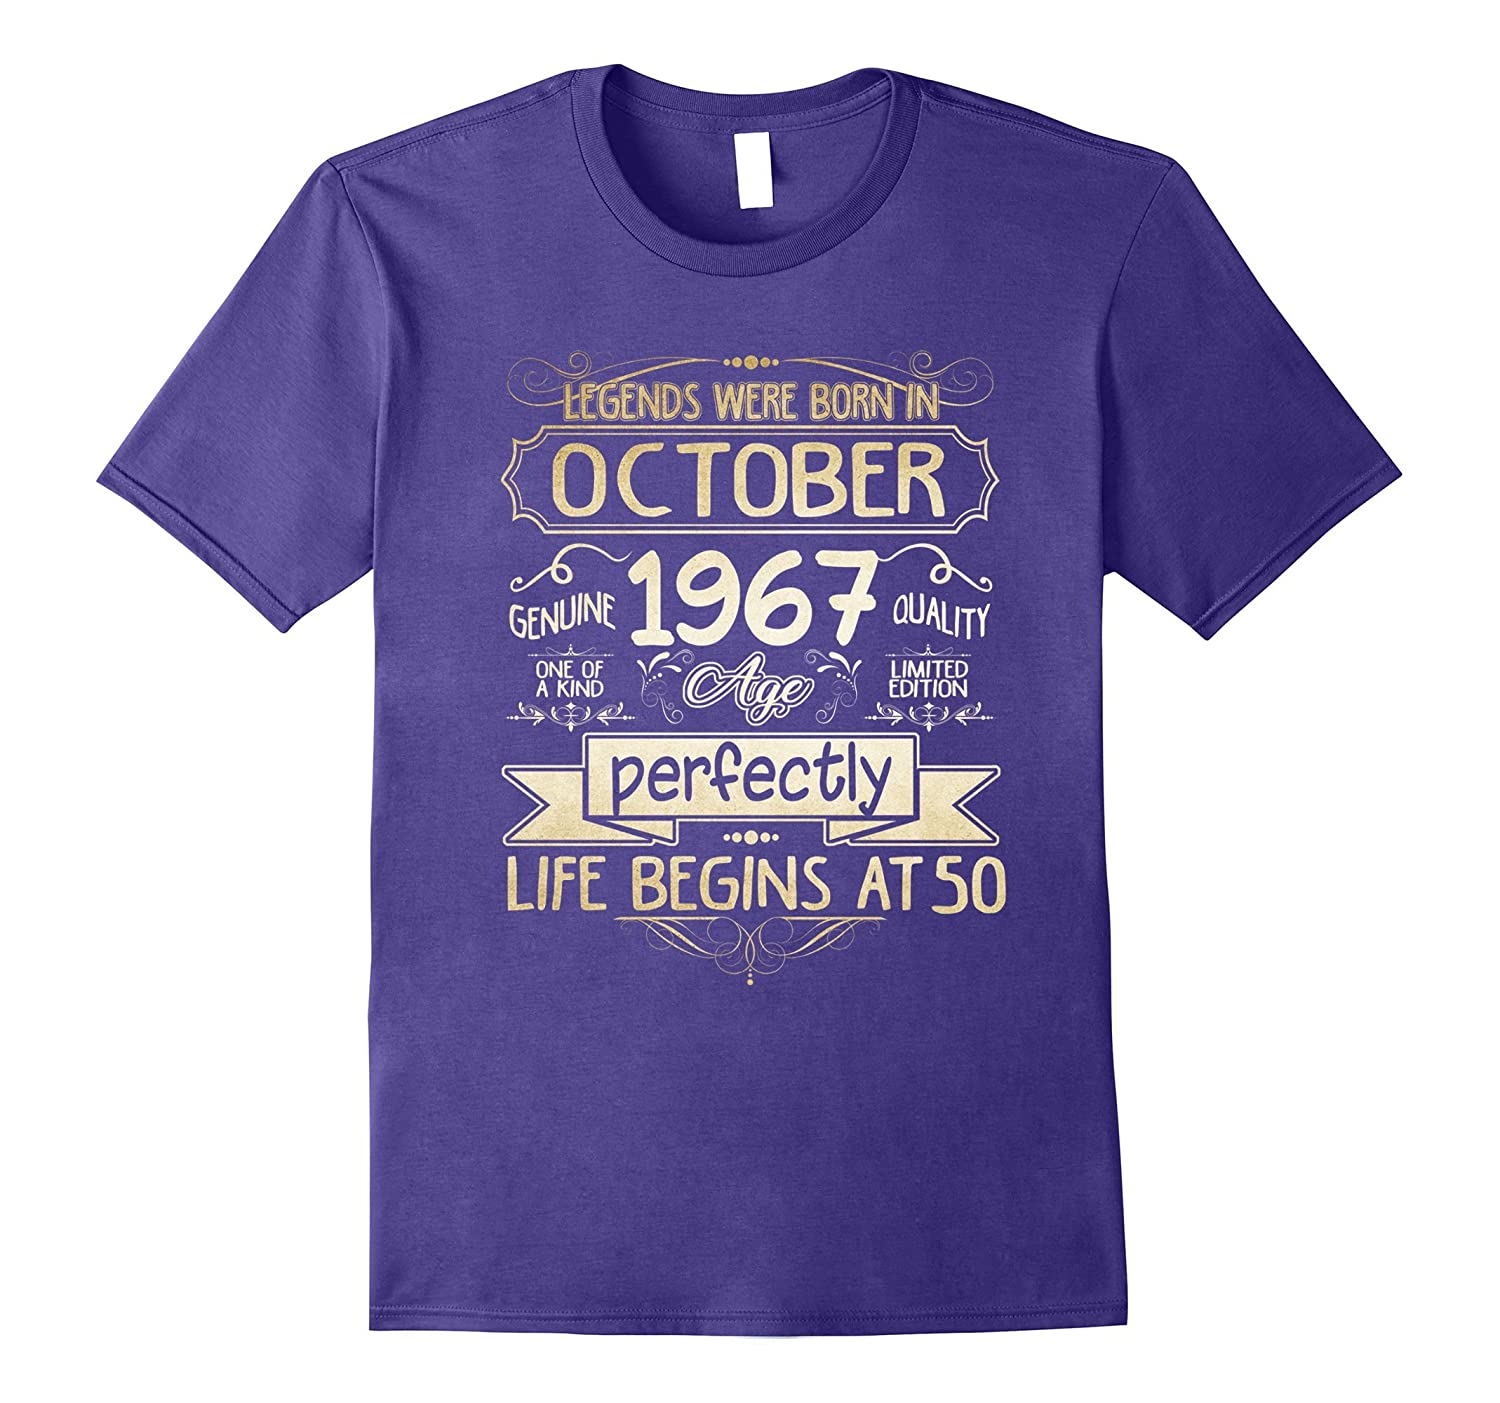 Legends Were Born In October 1967 T-Shirt 50th-TJ